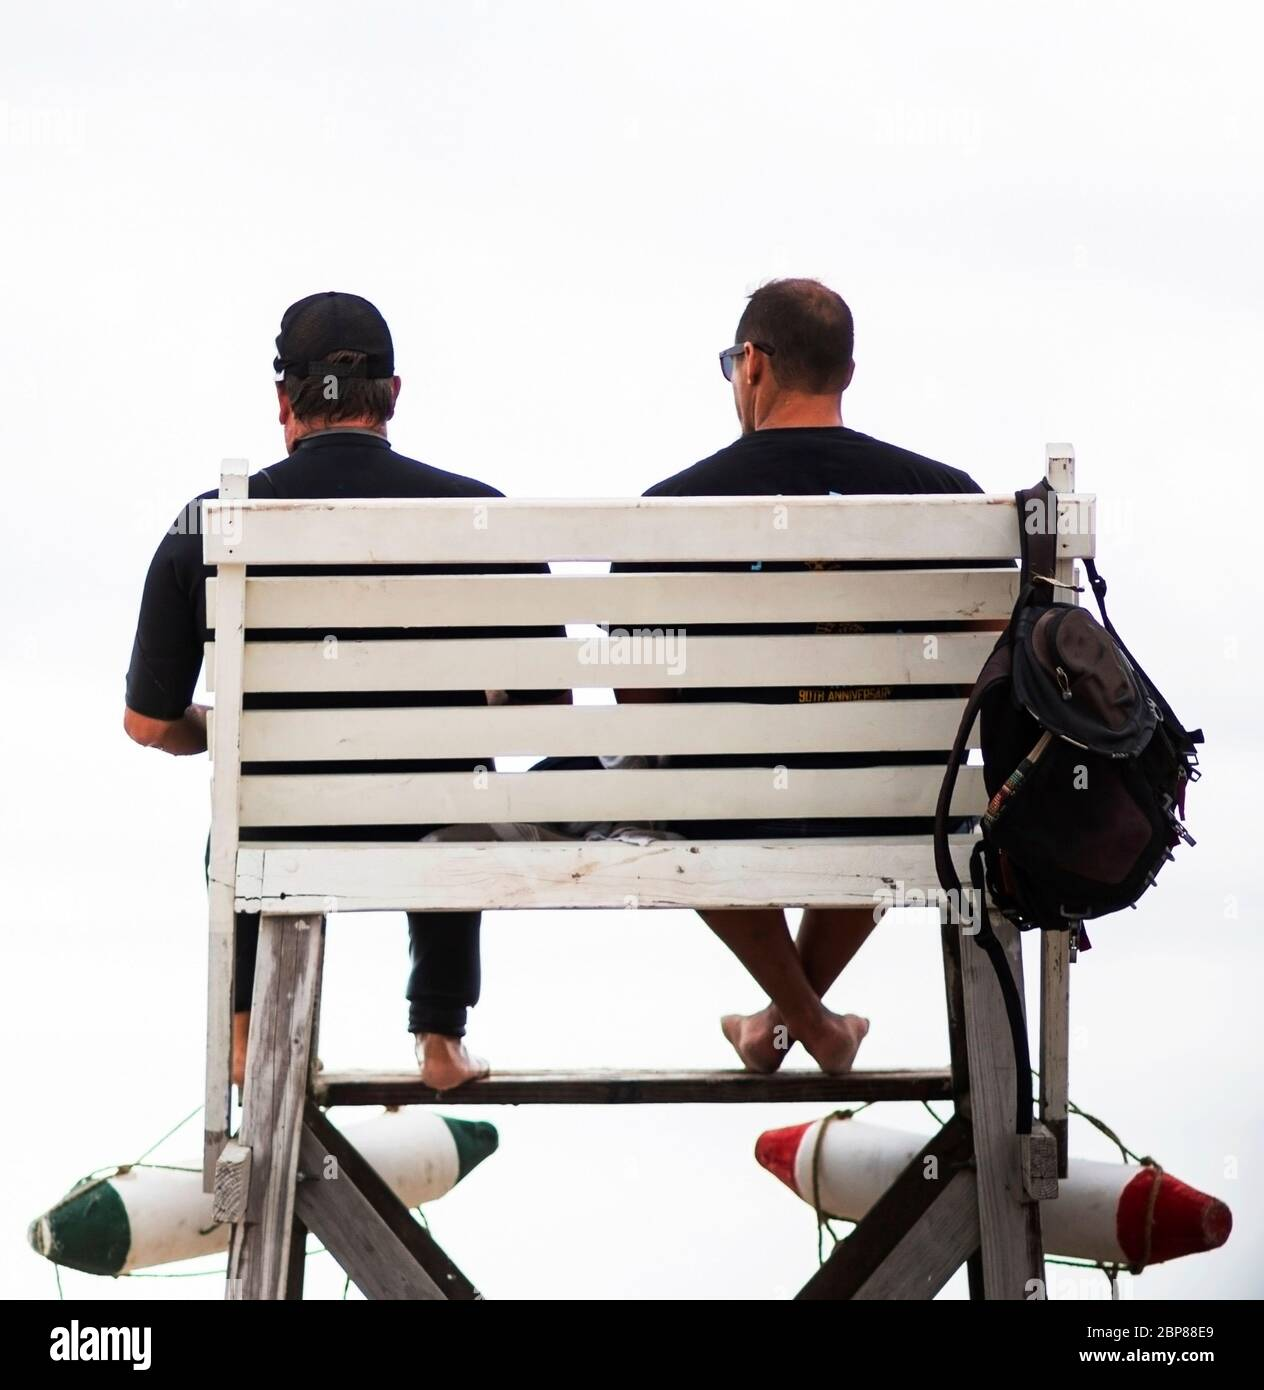 Rear view of two male lifeguards on duty sitting on a white guard towers with rescue flotation devices. Stock Photo